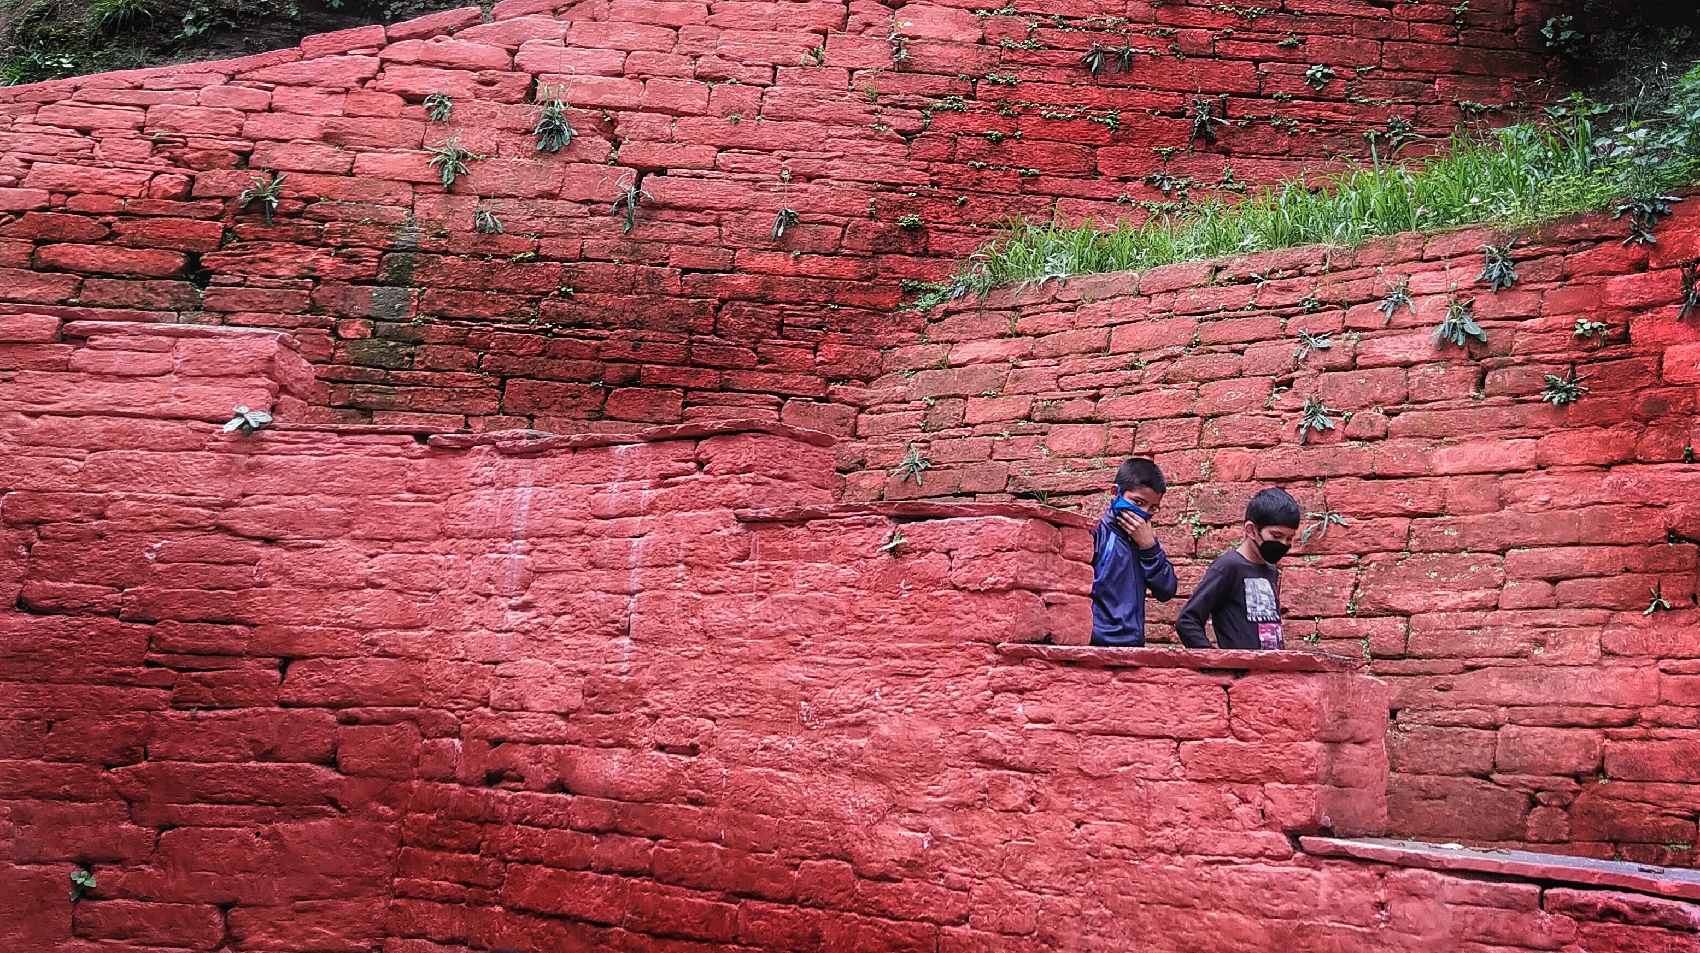 Hidden stairs behind the red wall